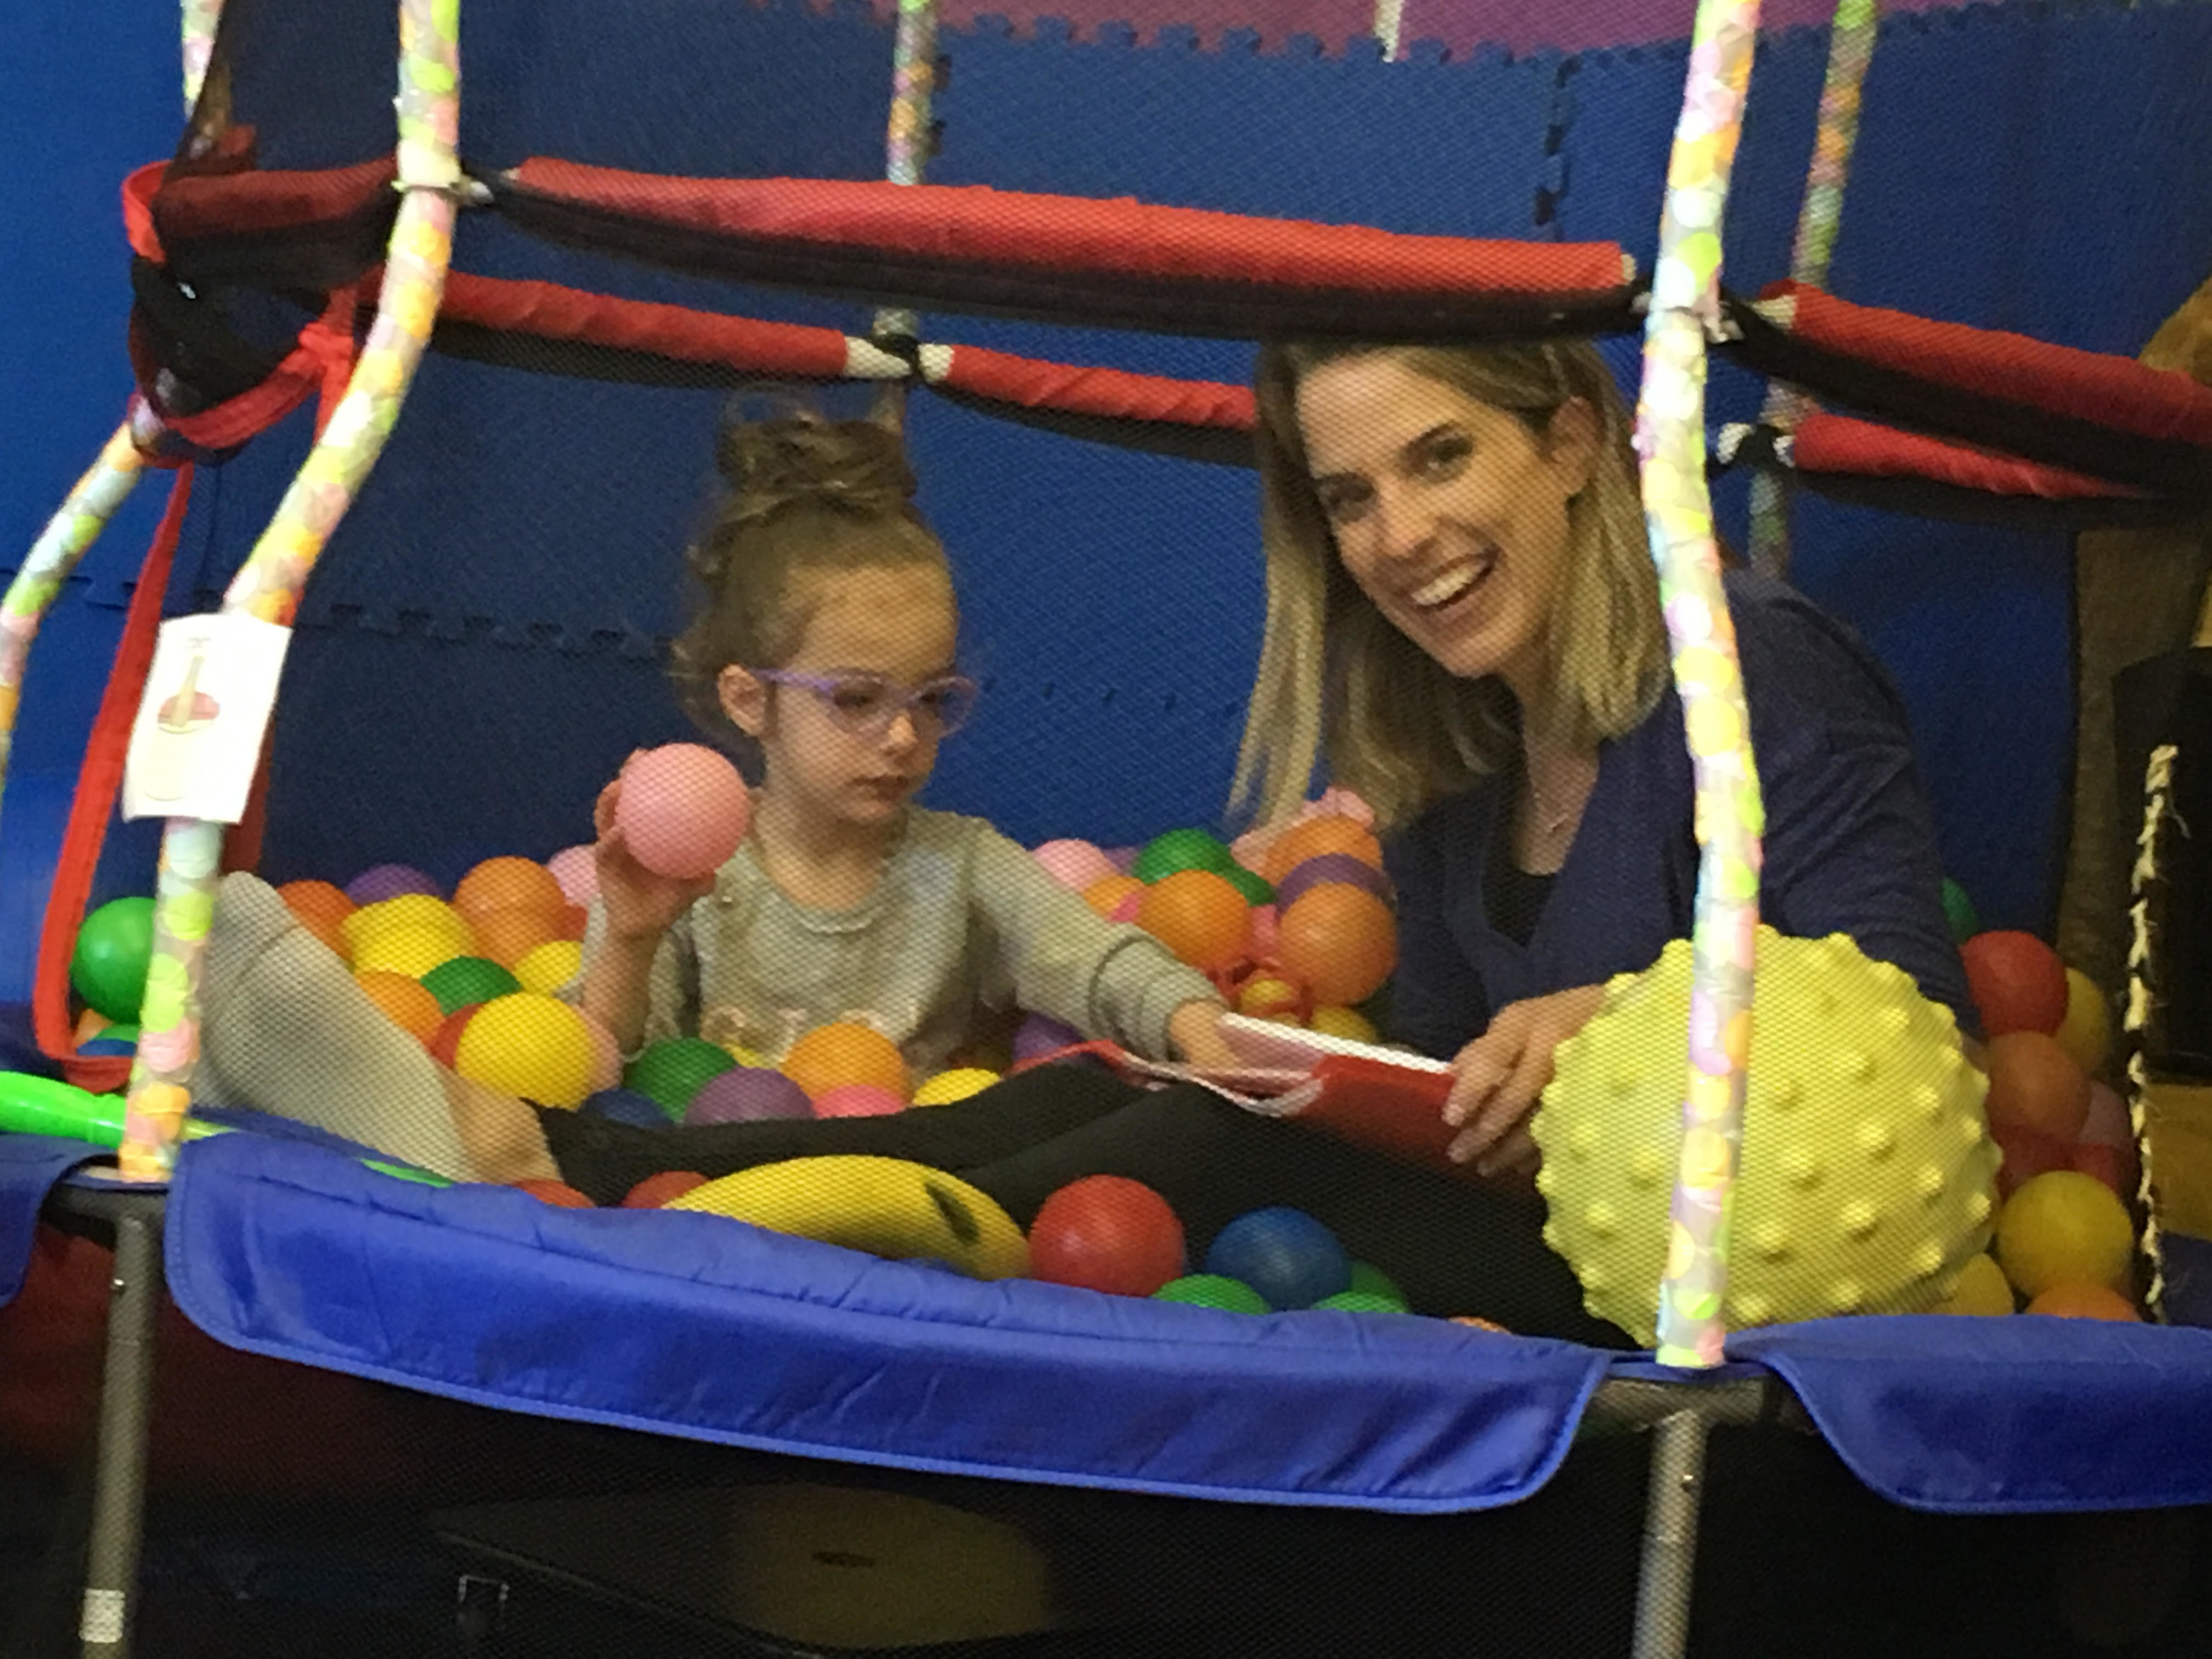 Speech teacher in ball pit with student